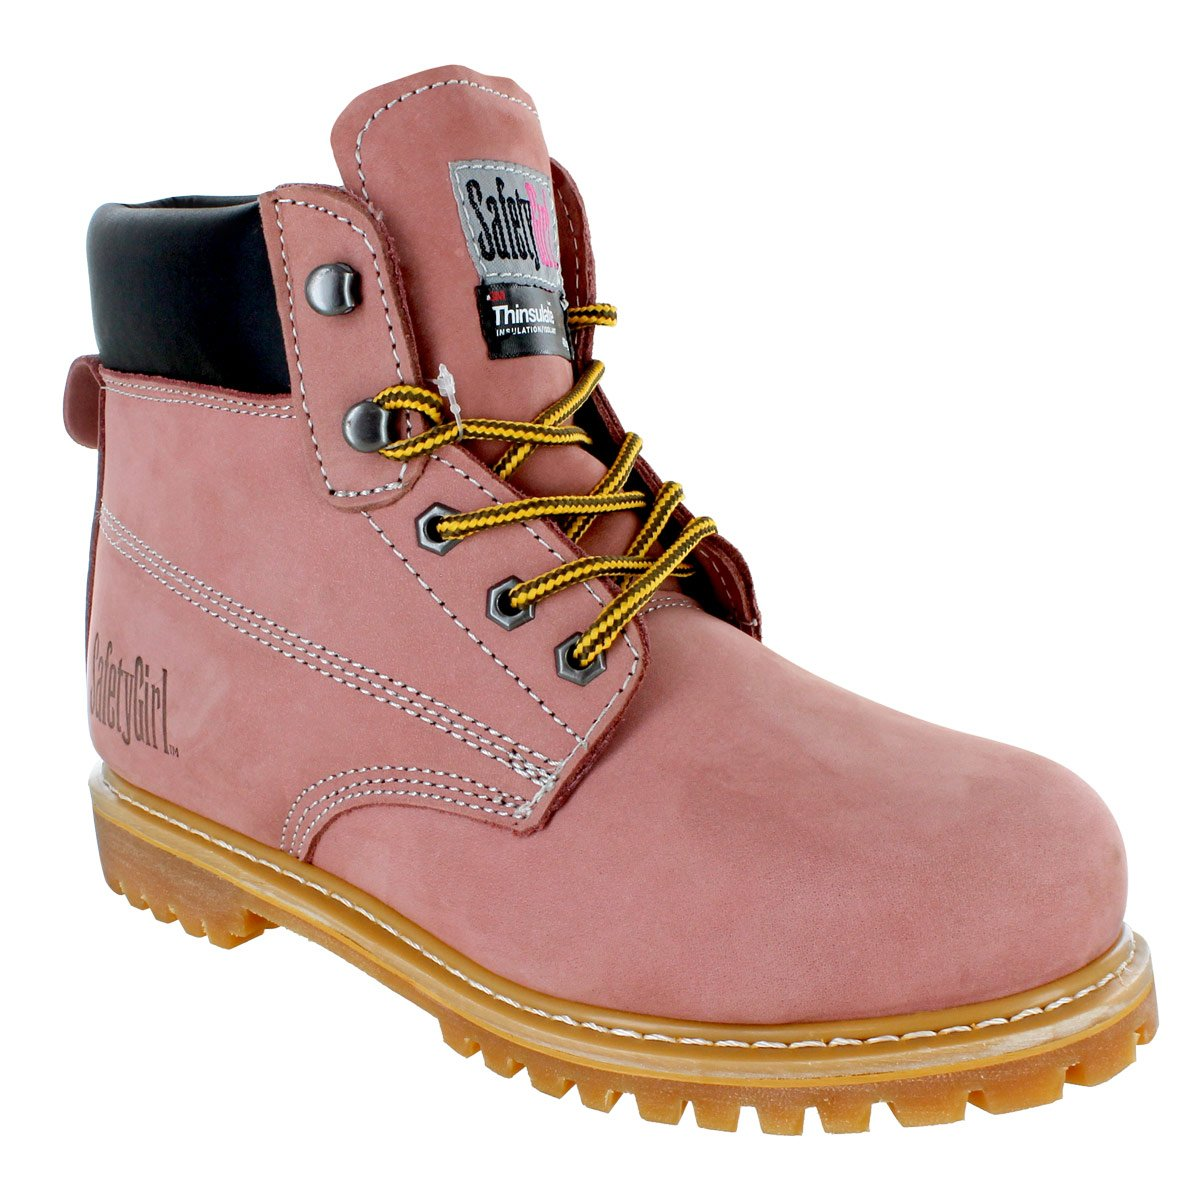 Safety Girl II Insulated Work Boot Soft Toe Light Pink